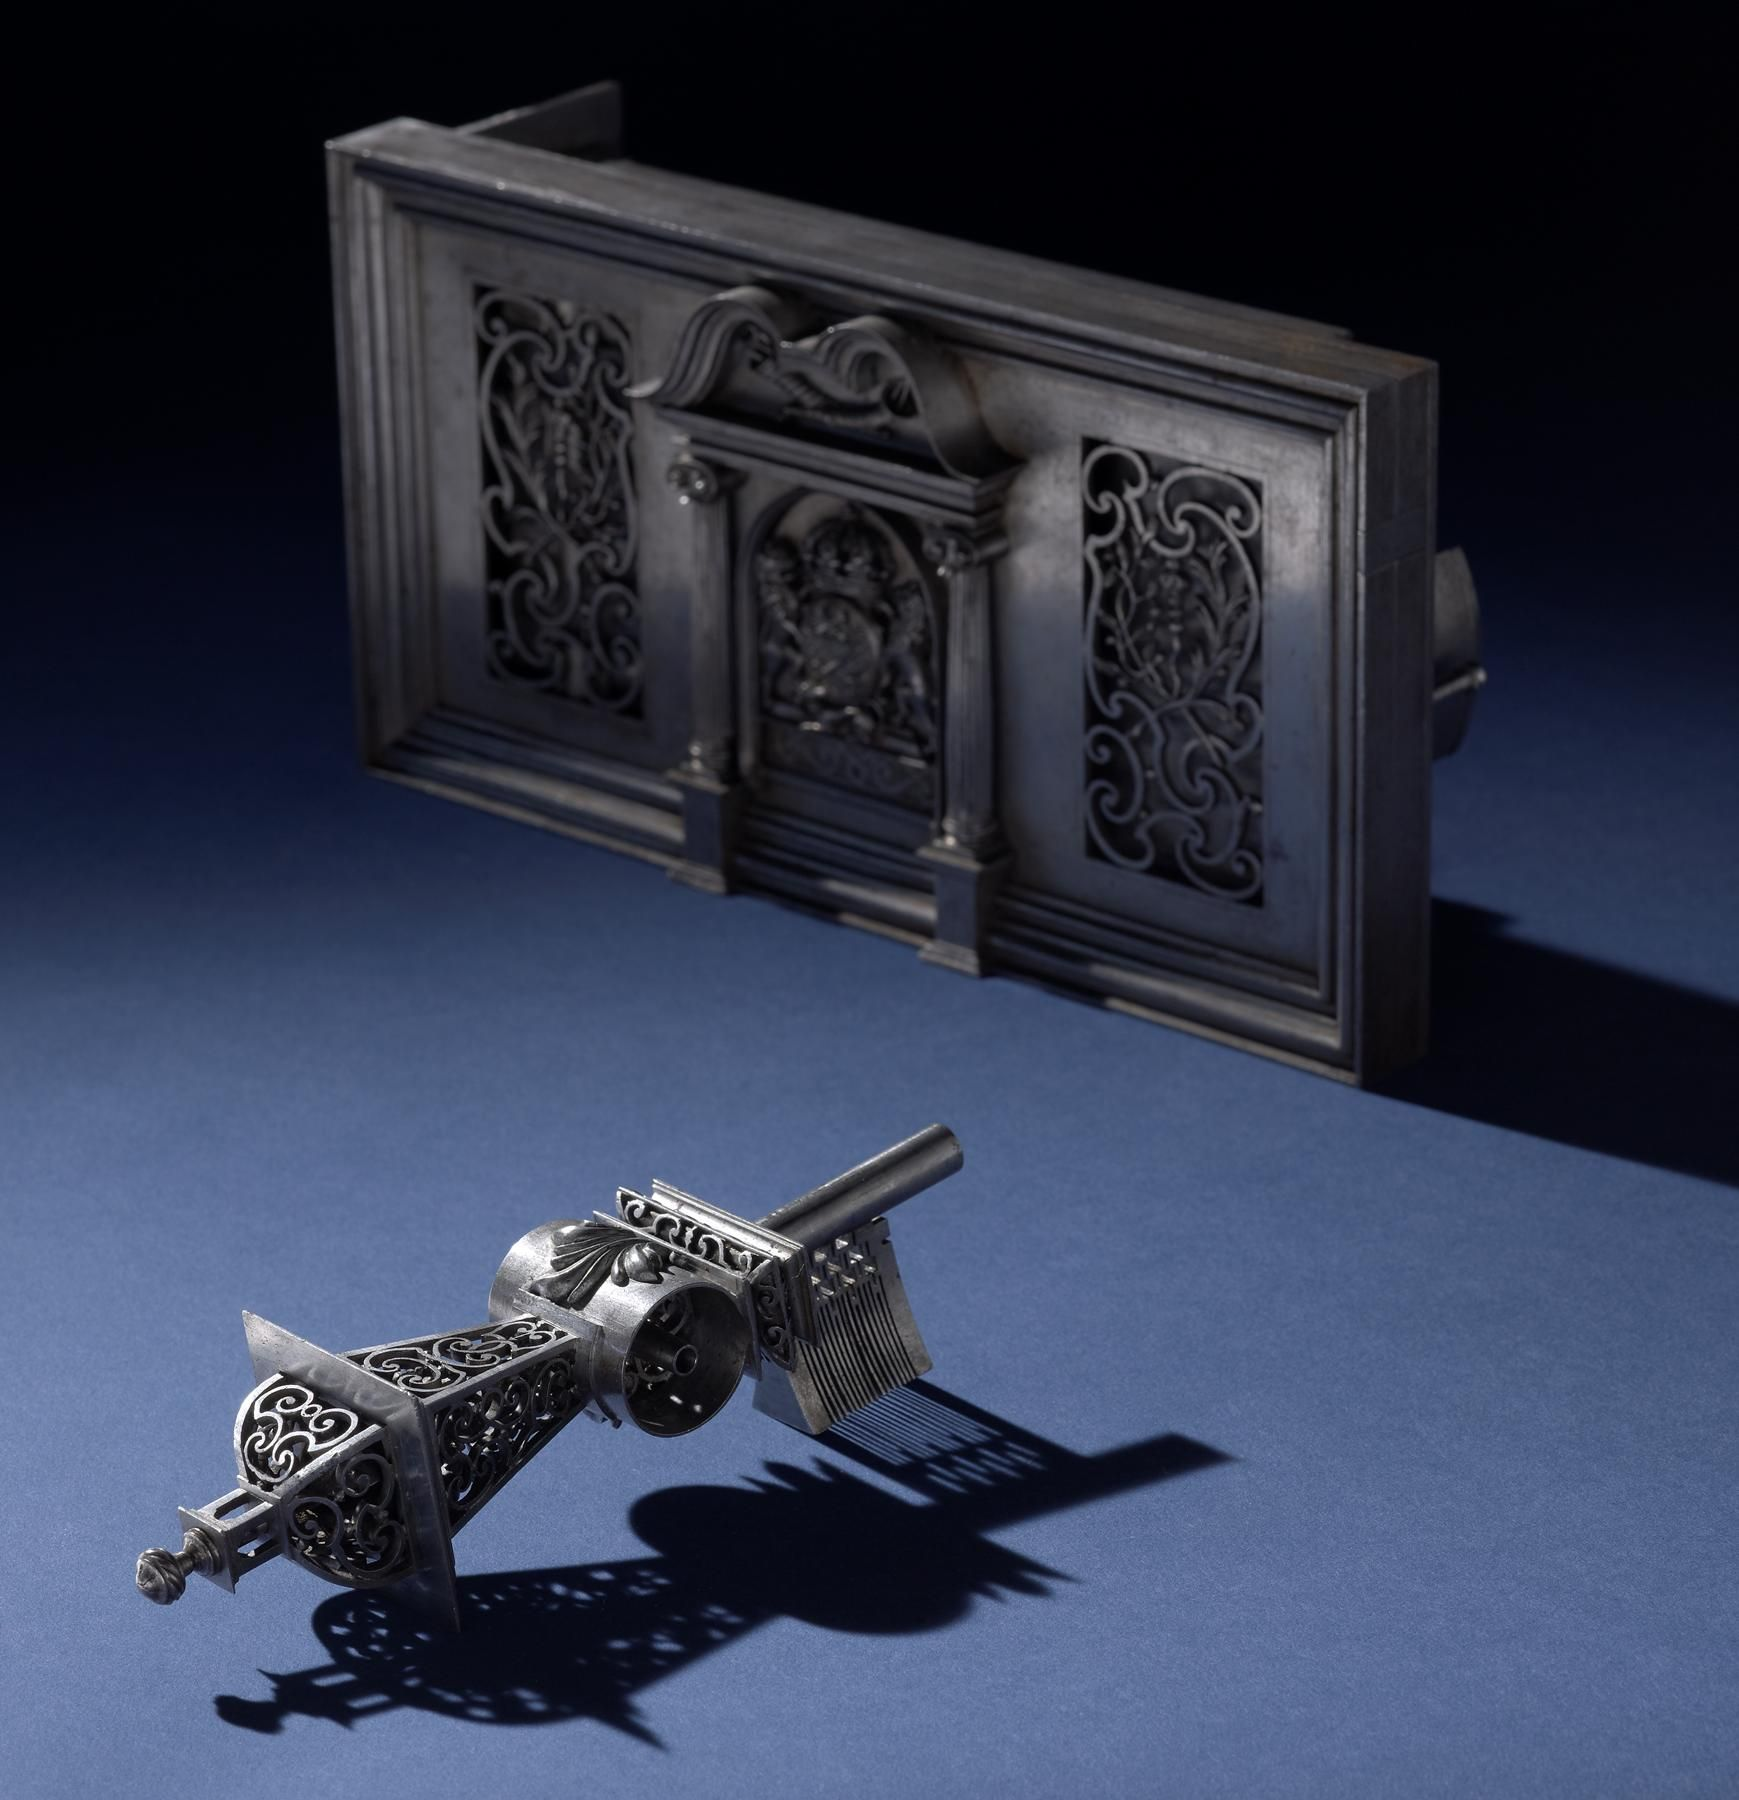 A late 17th century/early 18th century French masterpiece lock with key.